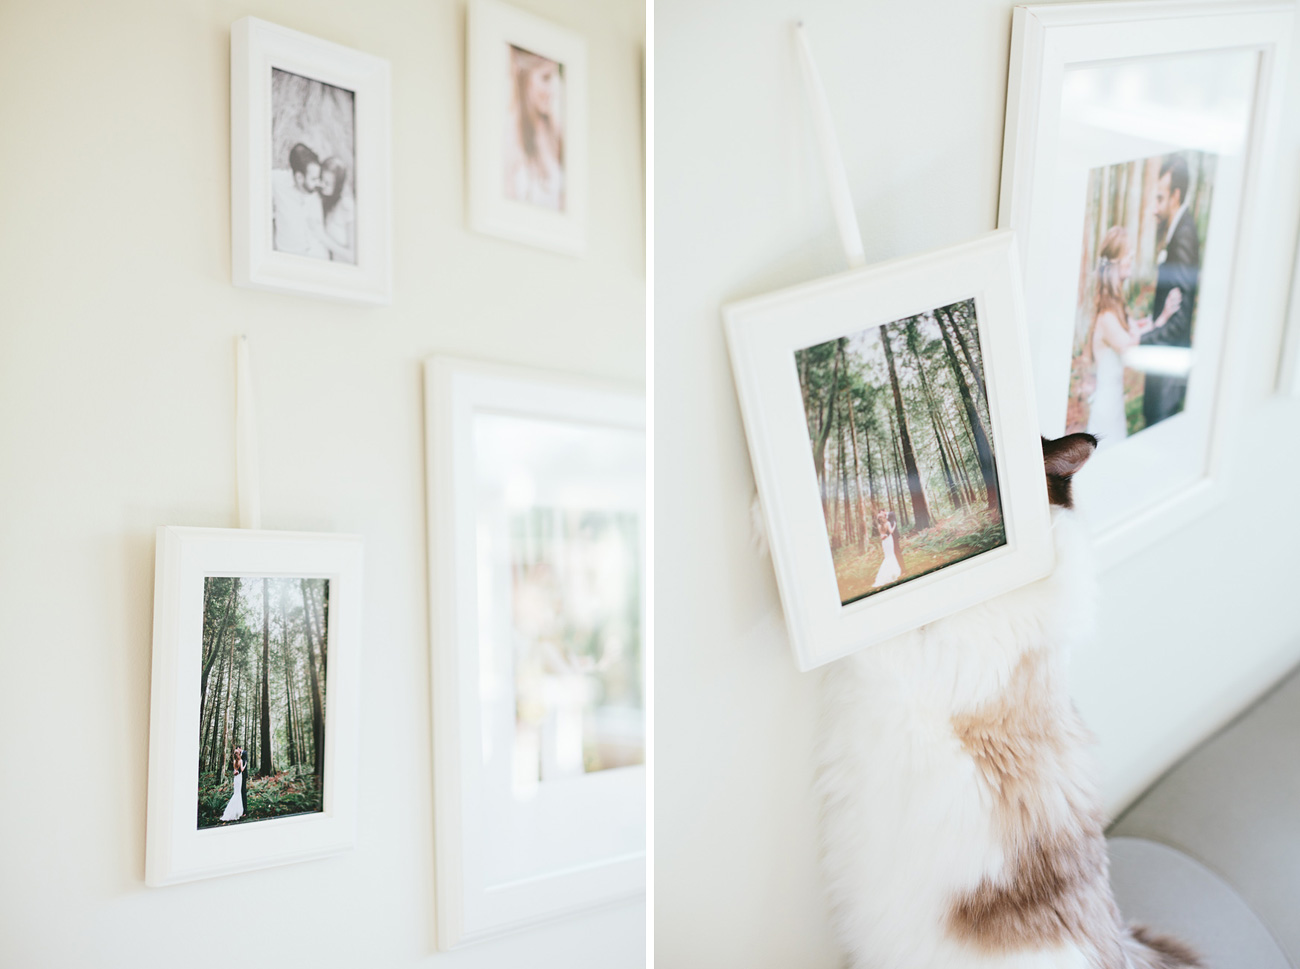 002-how-to-design-gallery-wall